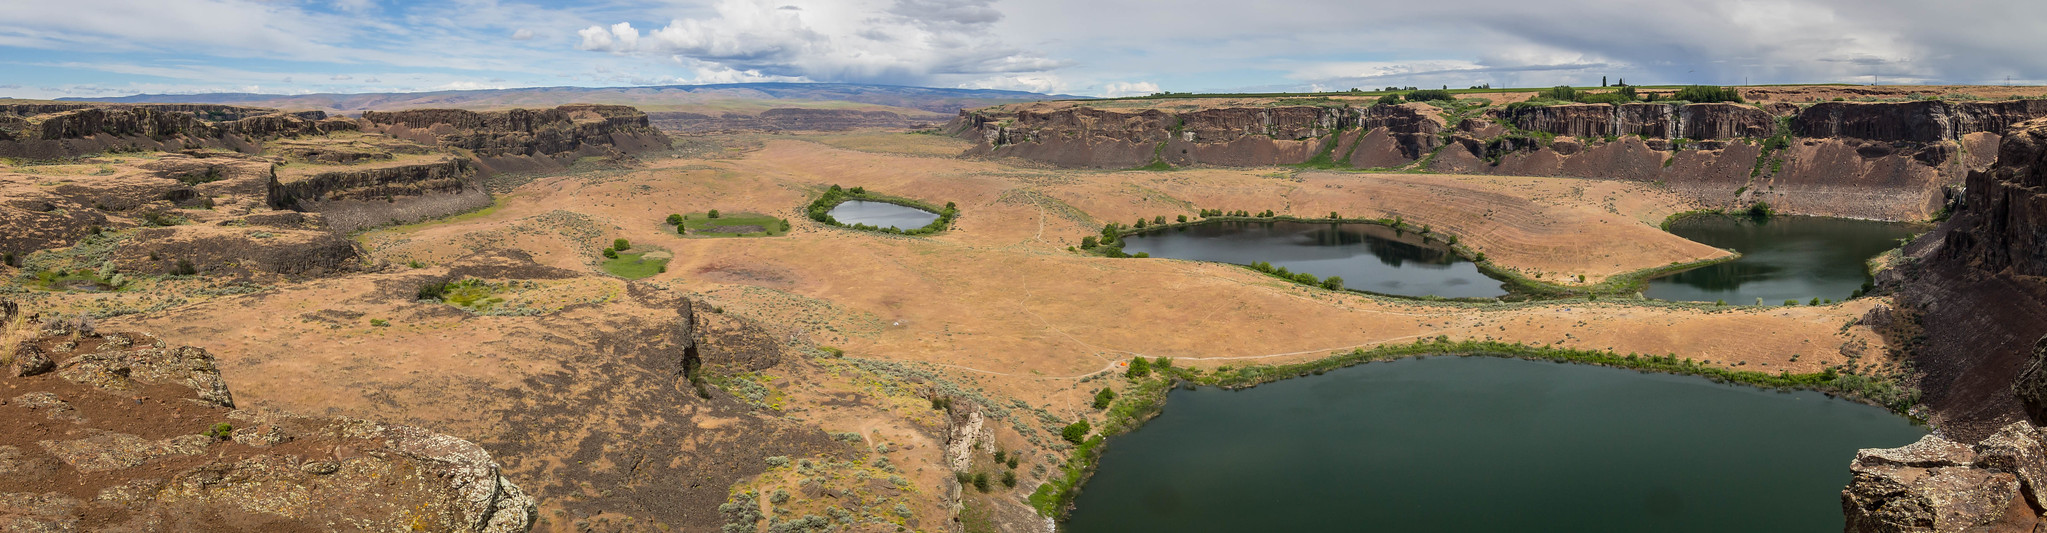 Coulee panorama